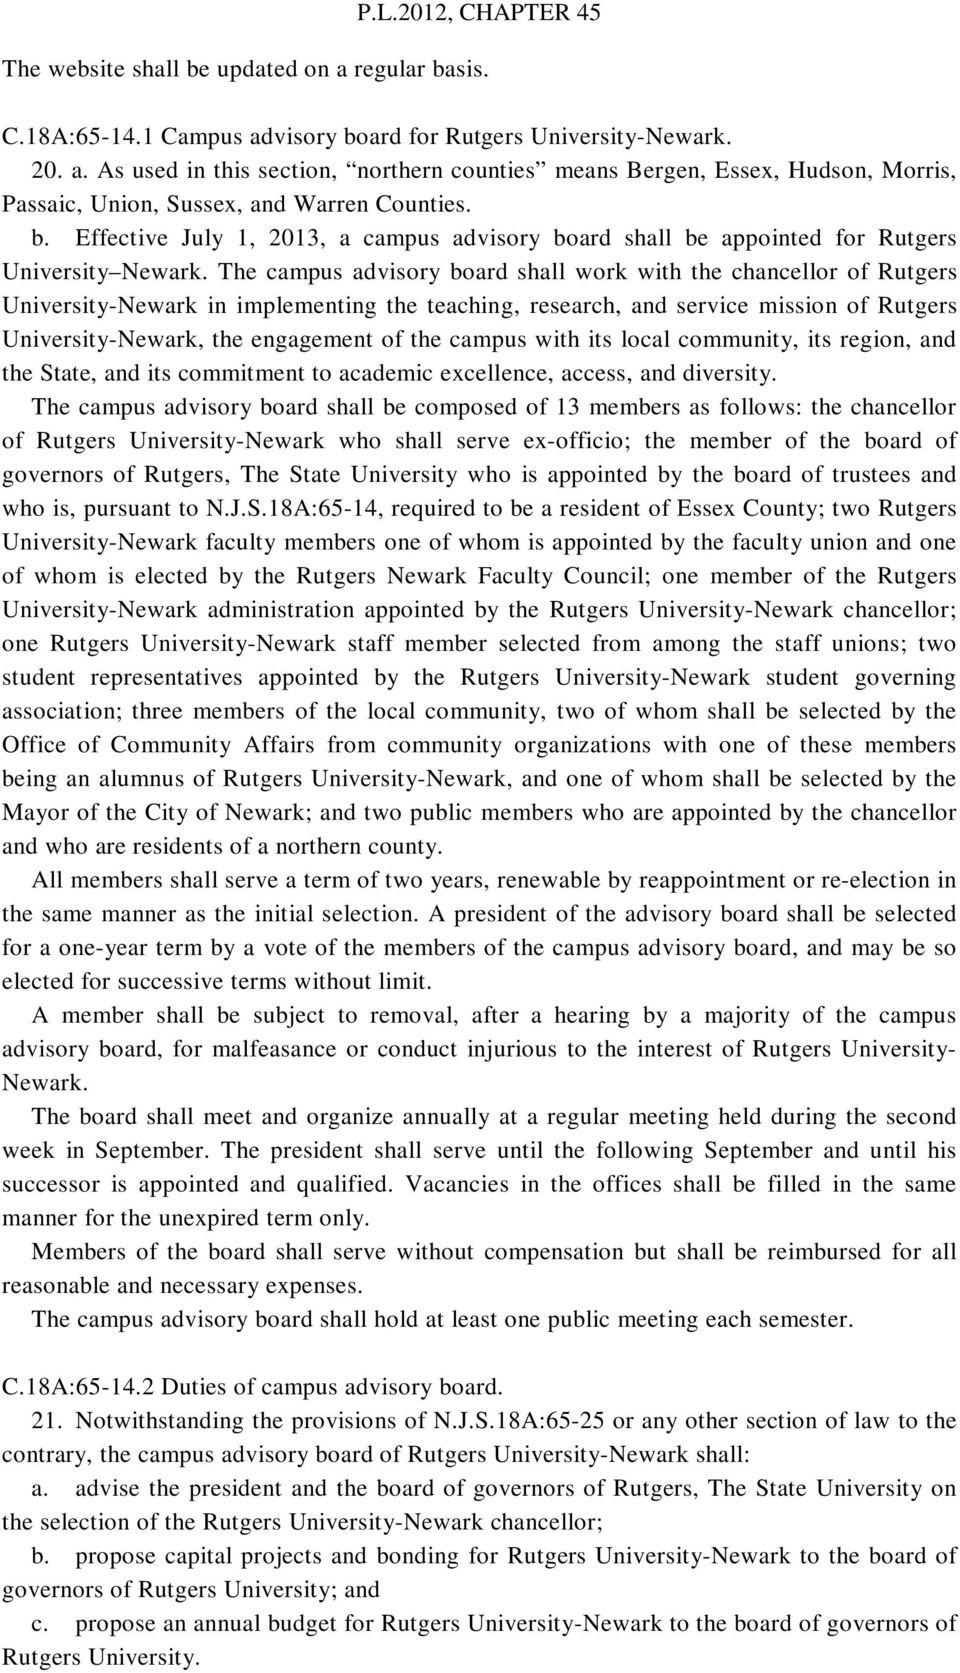 The campus advisory board shall work with the chancellor of Rutgers University-Newark in implementing the teaching, research, and service mission of Rutgers University-Newark, the engagement of the